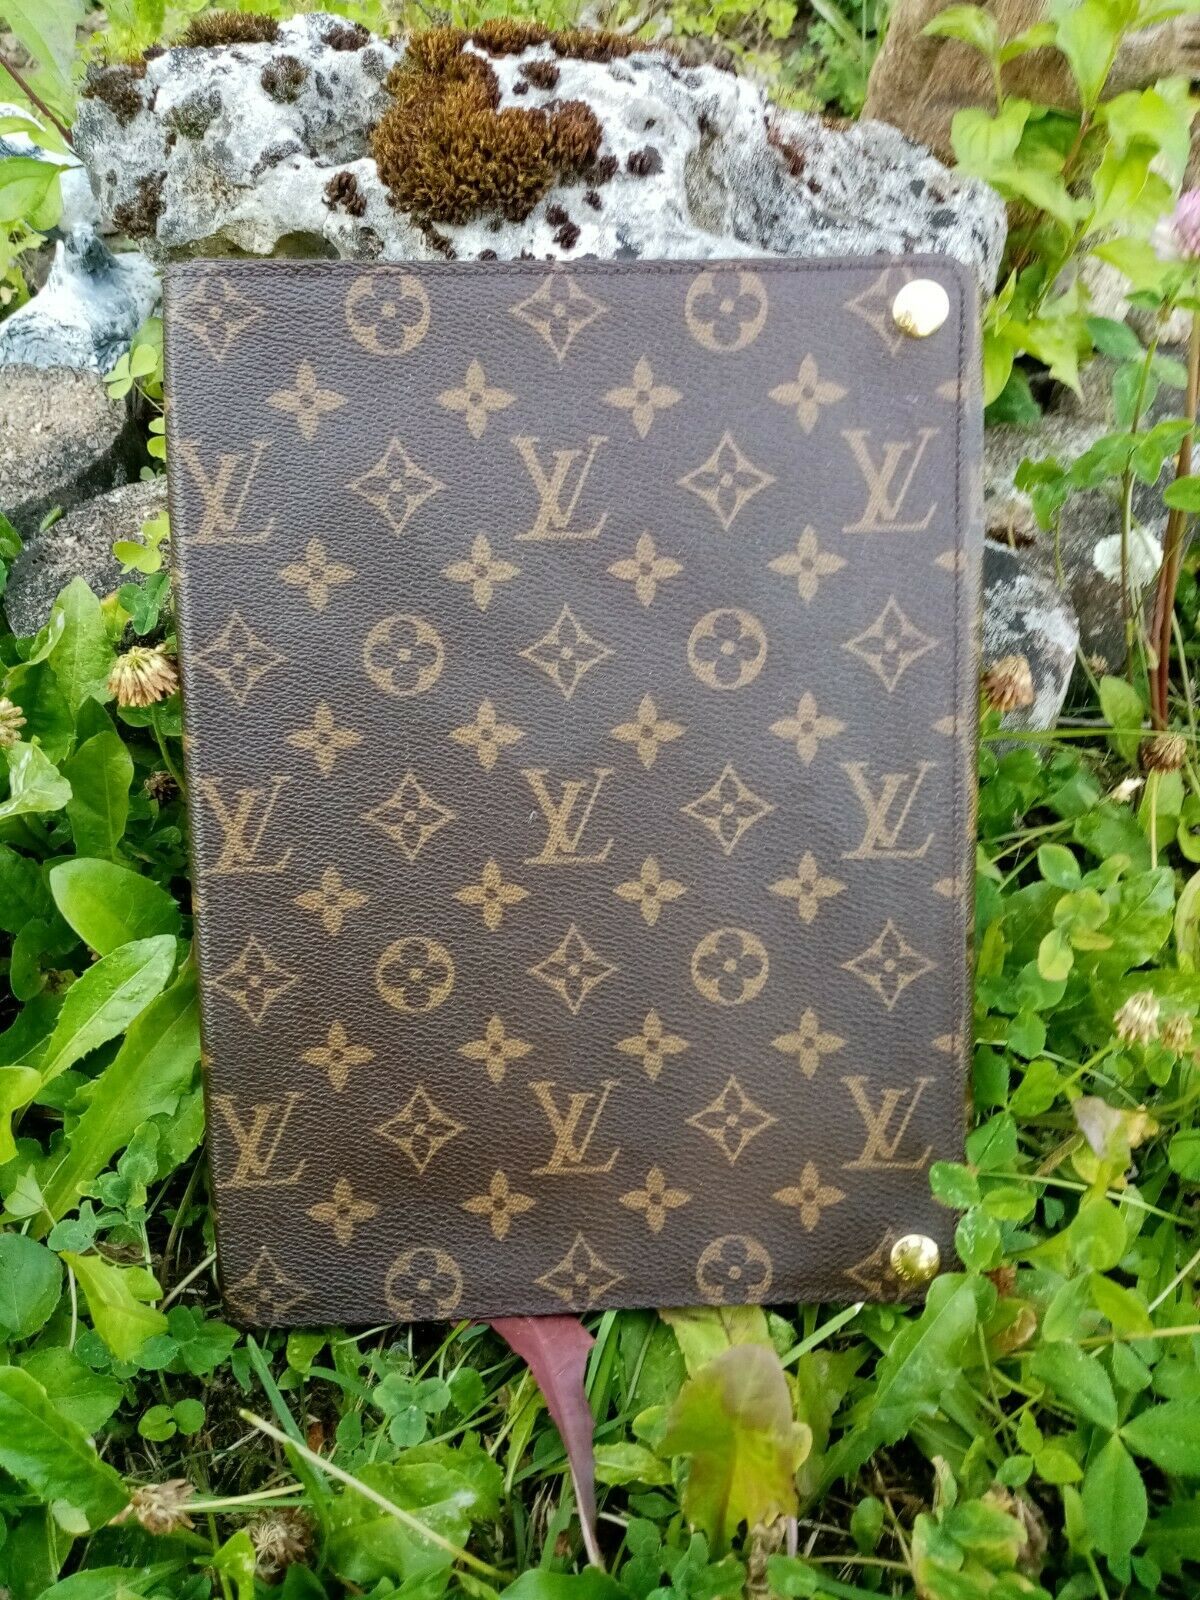 Original Louis Vuitton Leder Case für iPad 3+4 - 330.00,Kaufpreis 330,datum 30.07.2020 12:12:36,Website